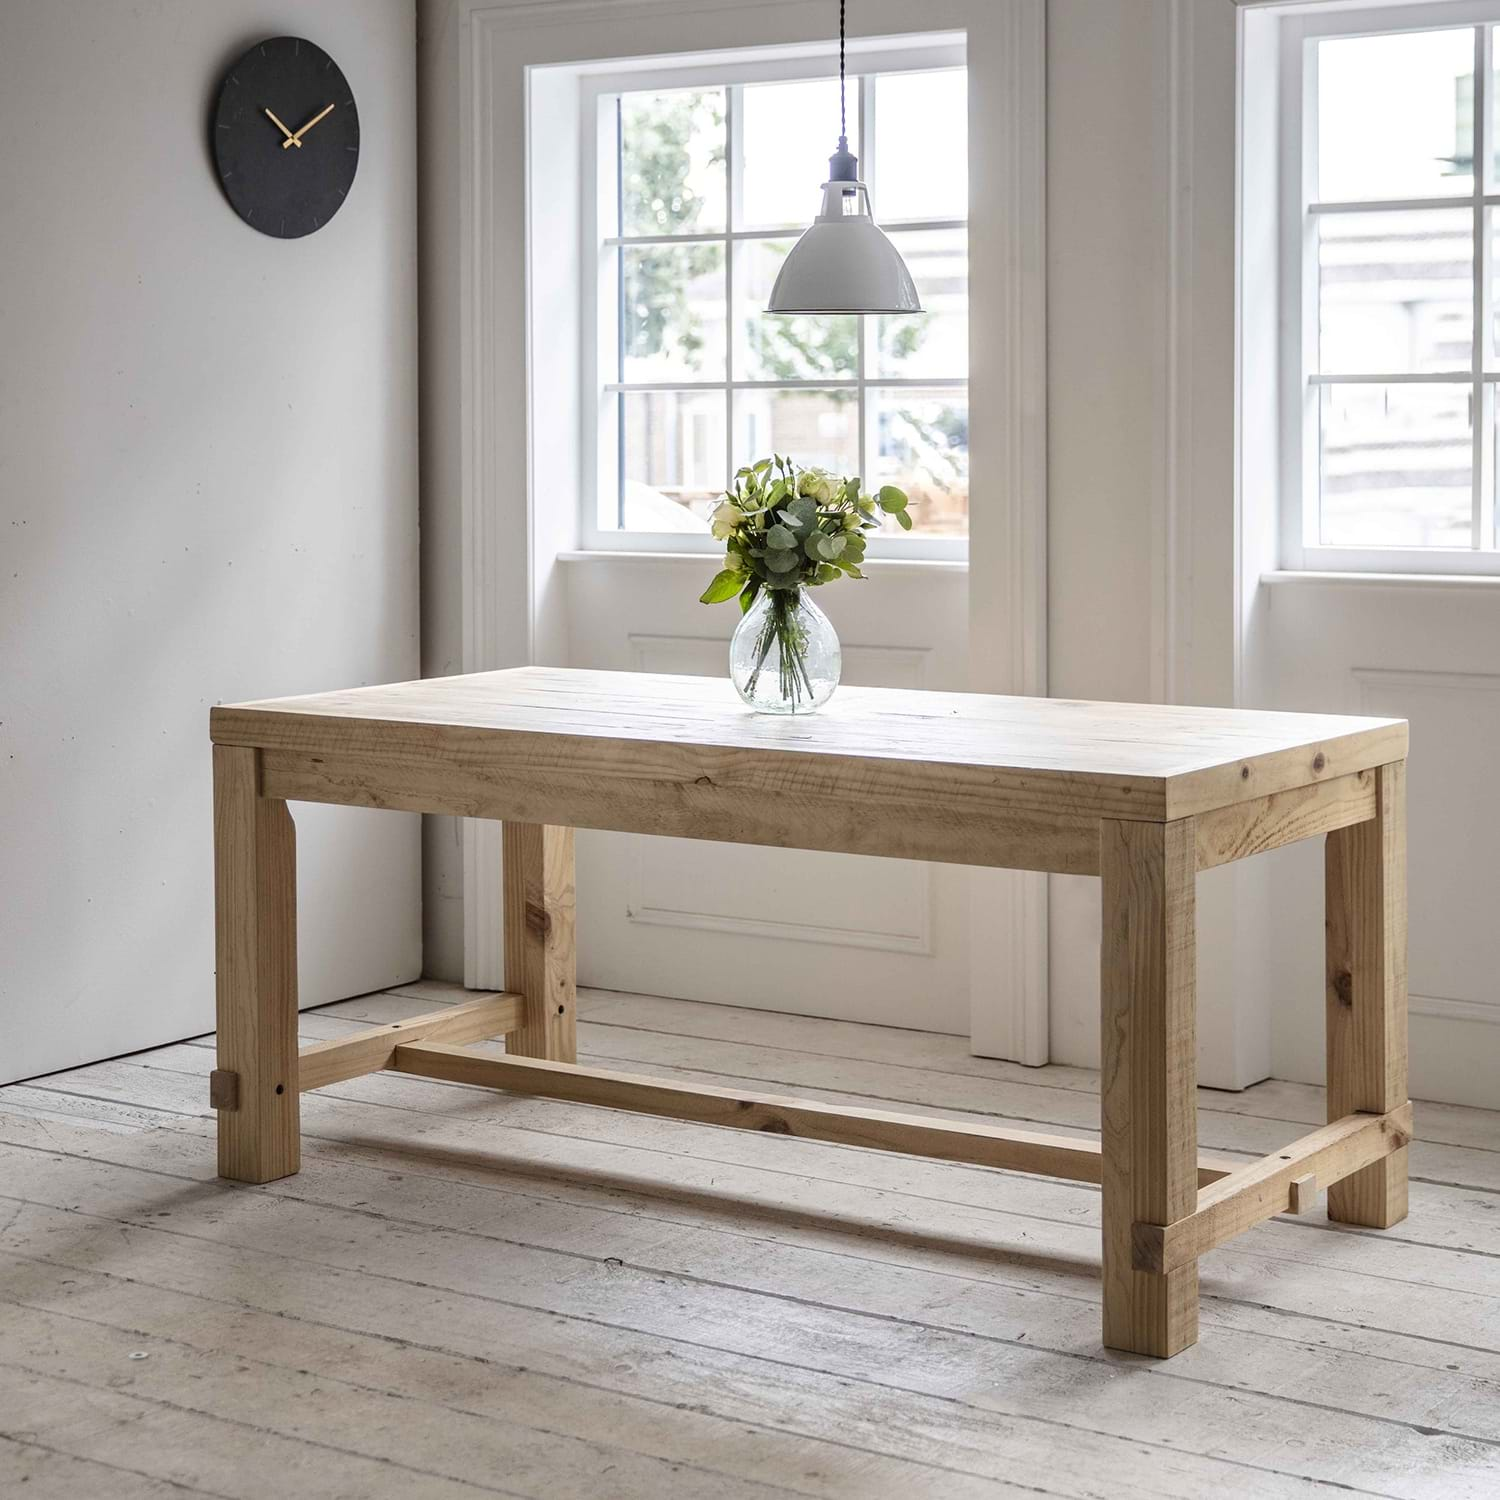 Image of Garden Trading Brookville Table, Small, Pine